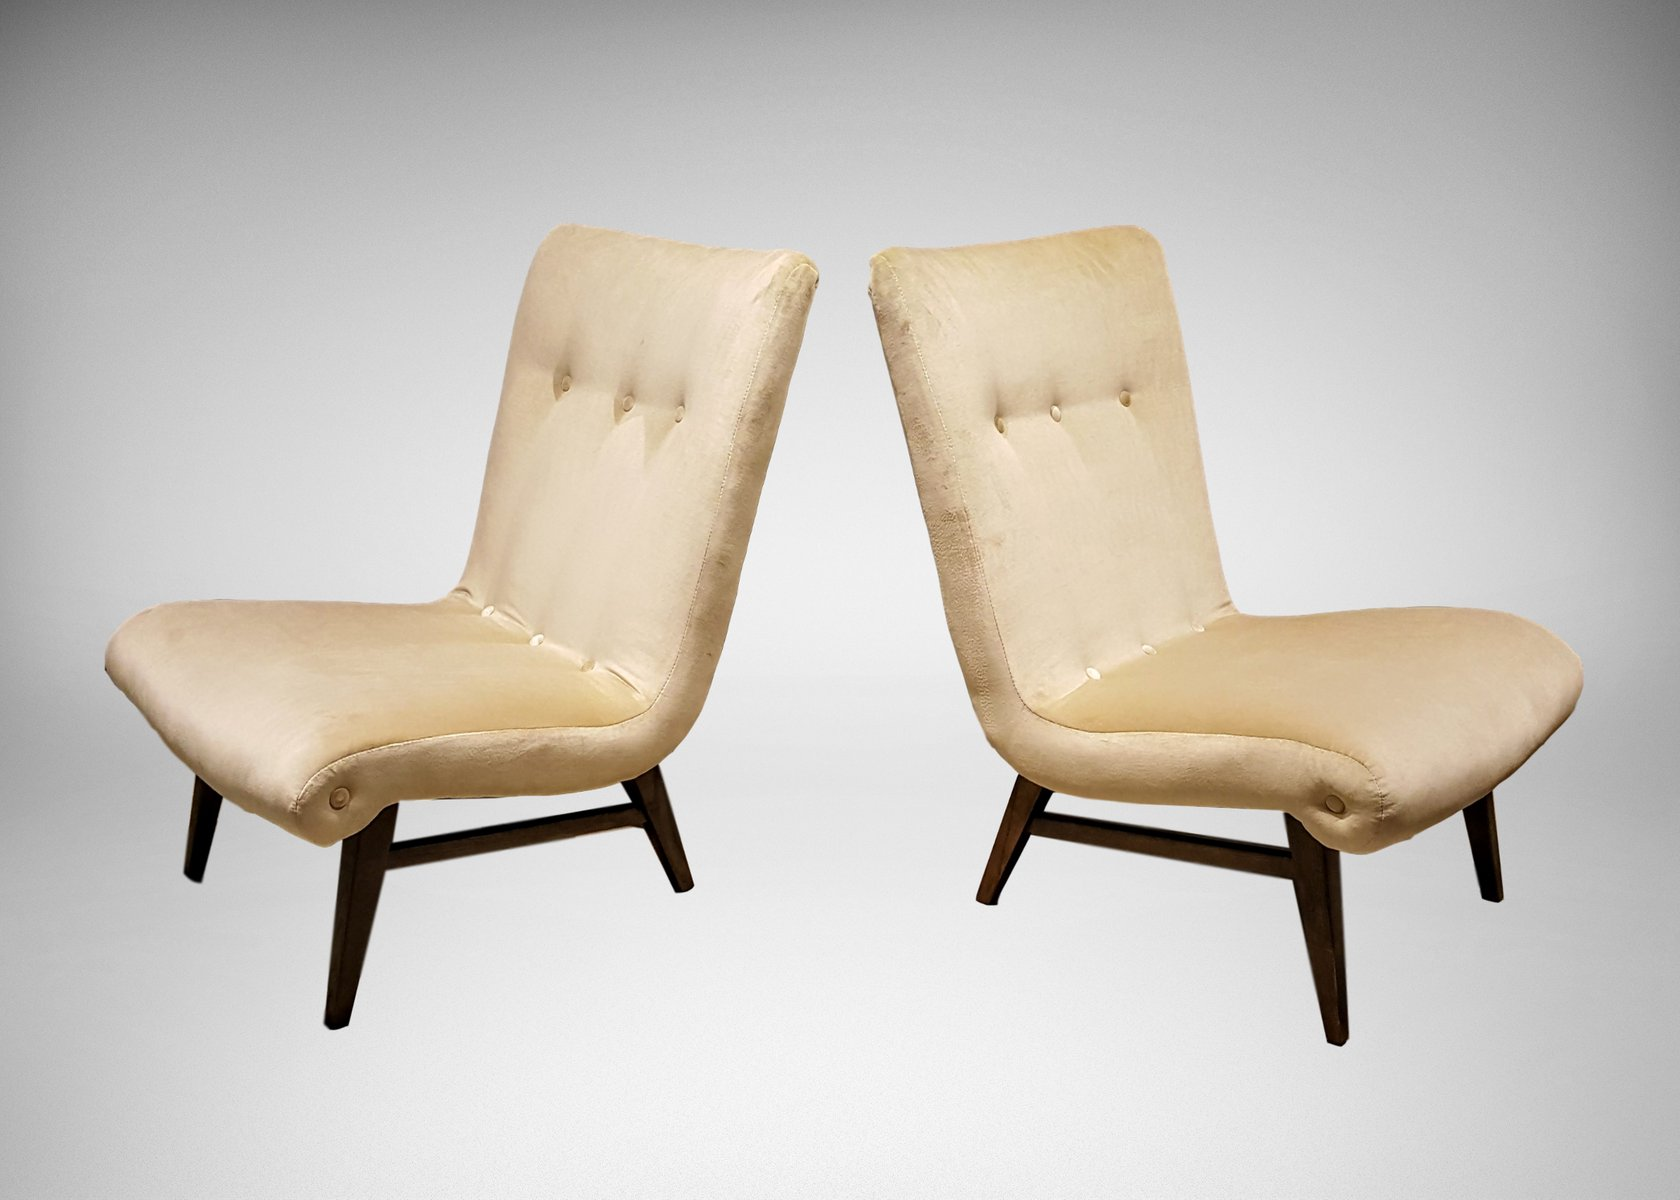 cream colored chairs swedish slipper chairs in colored velvet 1950s set 13590 | swedish slipper chairs in cream colored velvet 1950s set of 2 1